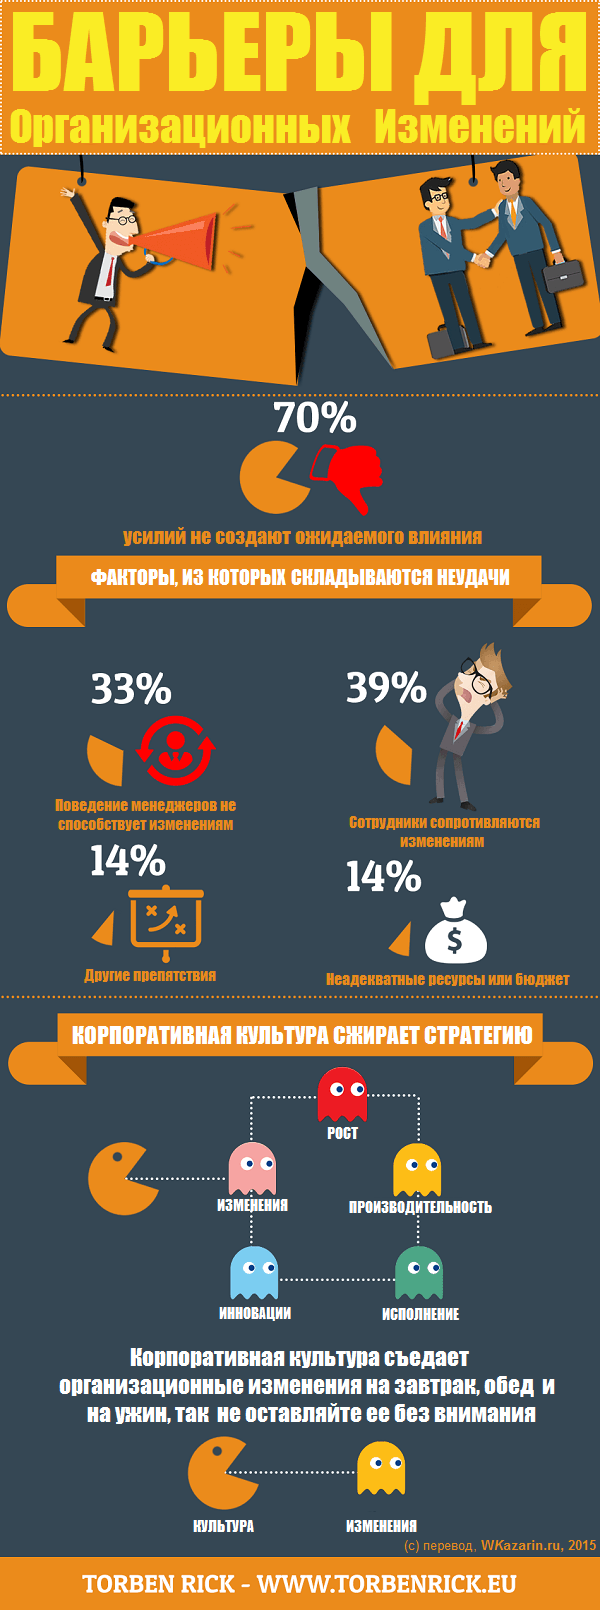 Infographic-Barriers-to-organizational-change-rus